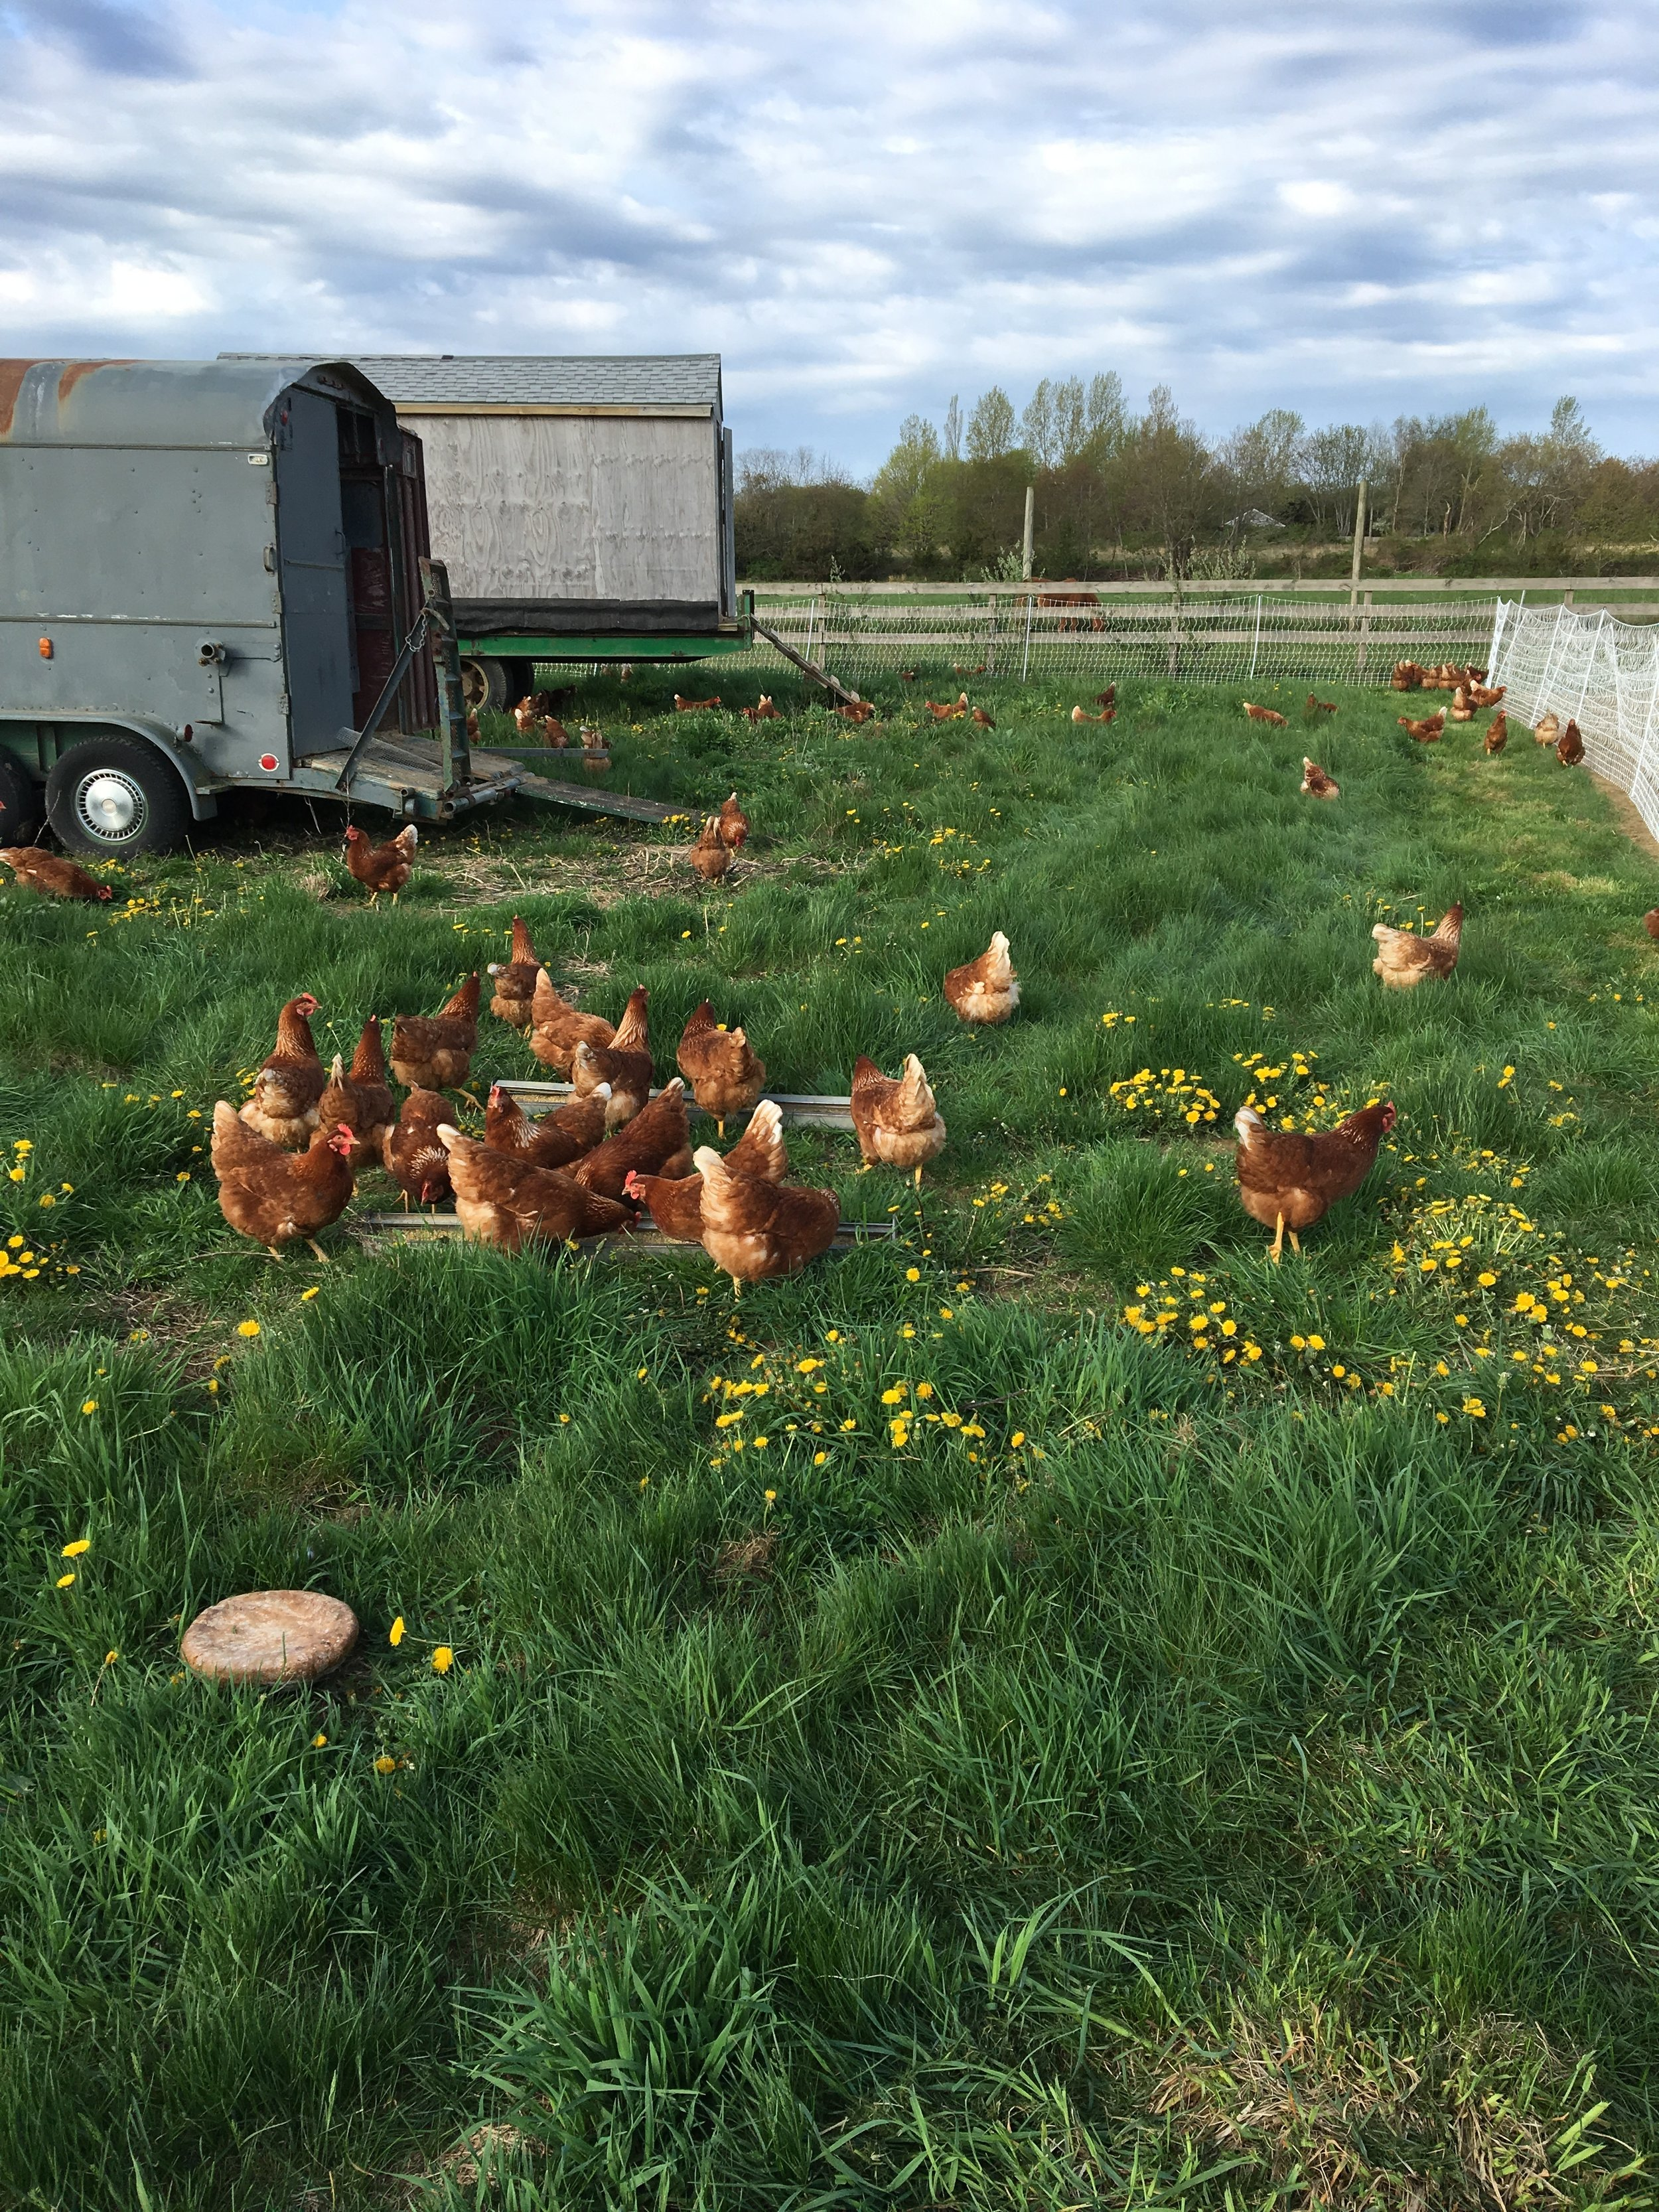 Our meat chickens are raised… - …in open floor houses that get moved daily. It gives our pasture the perfect amount of fertilizer and gives the birds a steady supply of grass and bugs and a safe place to grow. We process our meat chickens on farm every other week from May-October and sell the meat right in our farm store. We offer whole birds as well as butchered cuts and backs and necks for stock. The meat from a pasture raised chicken is nothing like you'll find in the grocery store.